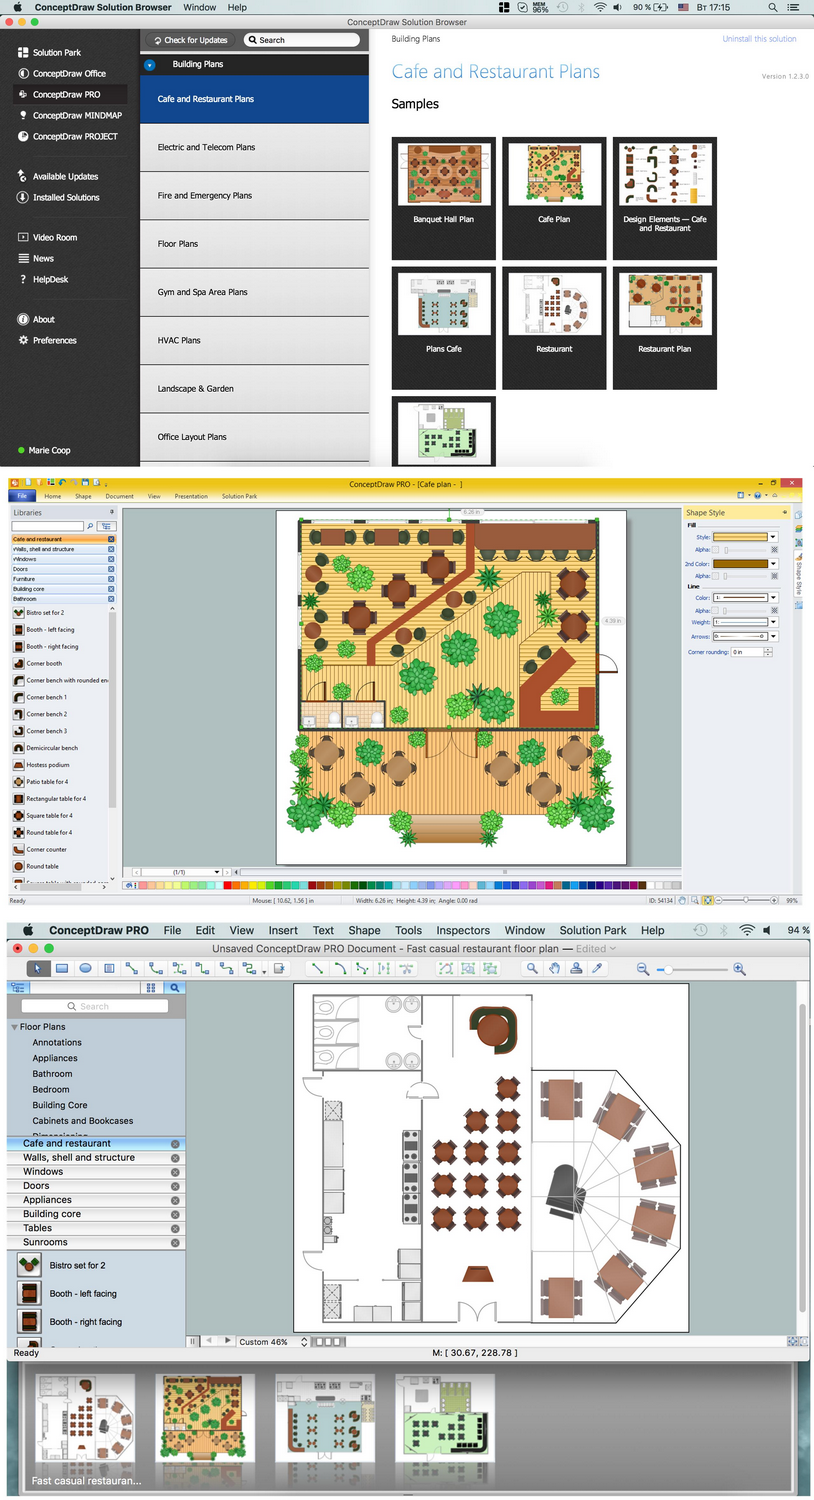 Caf floor plan example professional building drawing for Restaurant design software